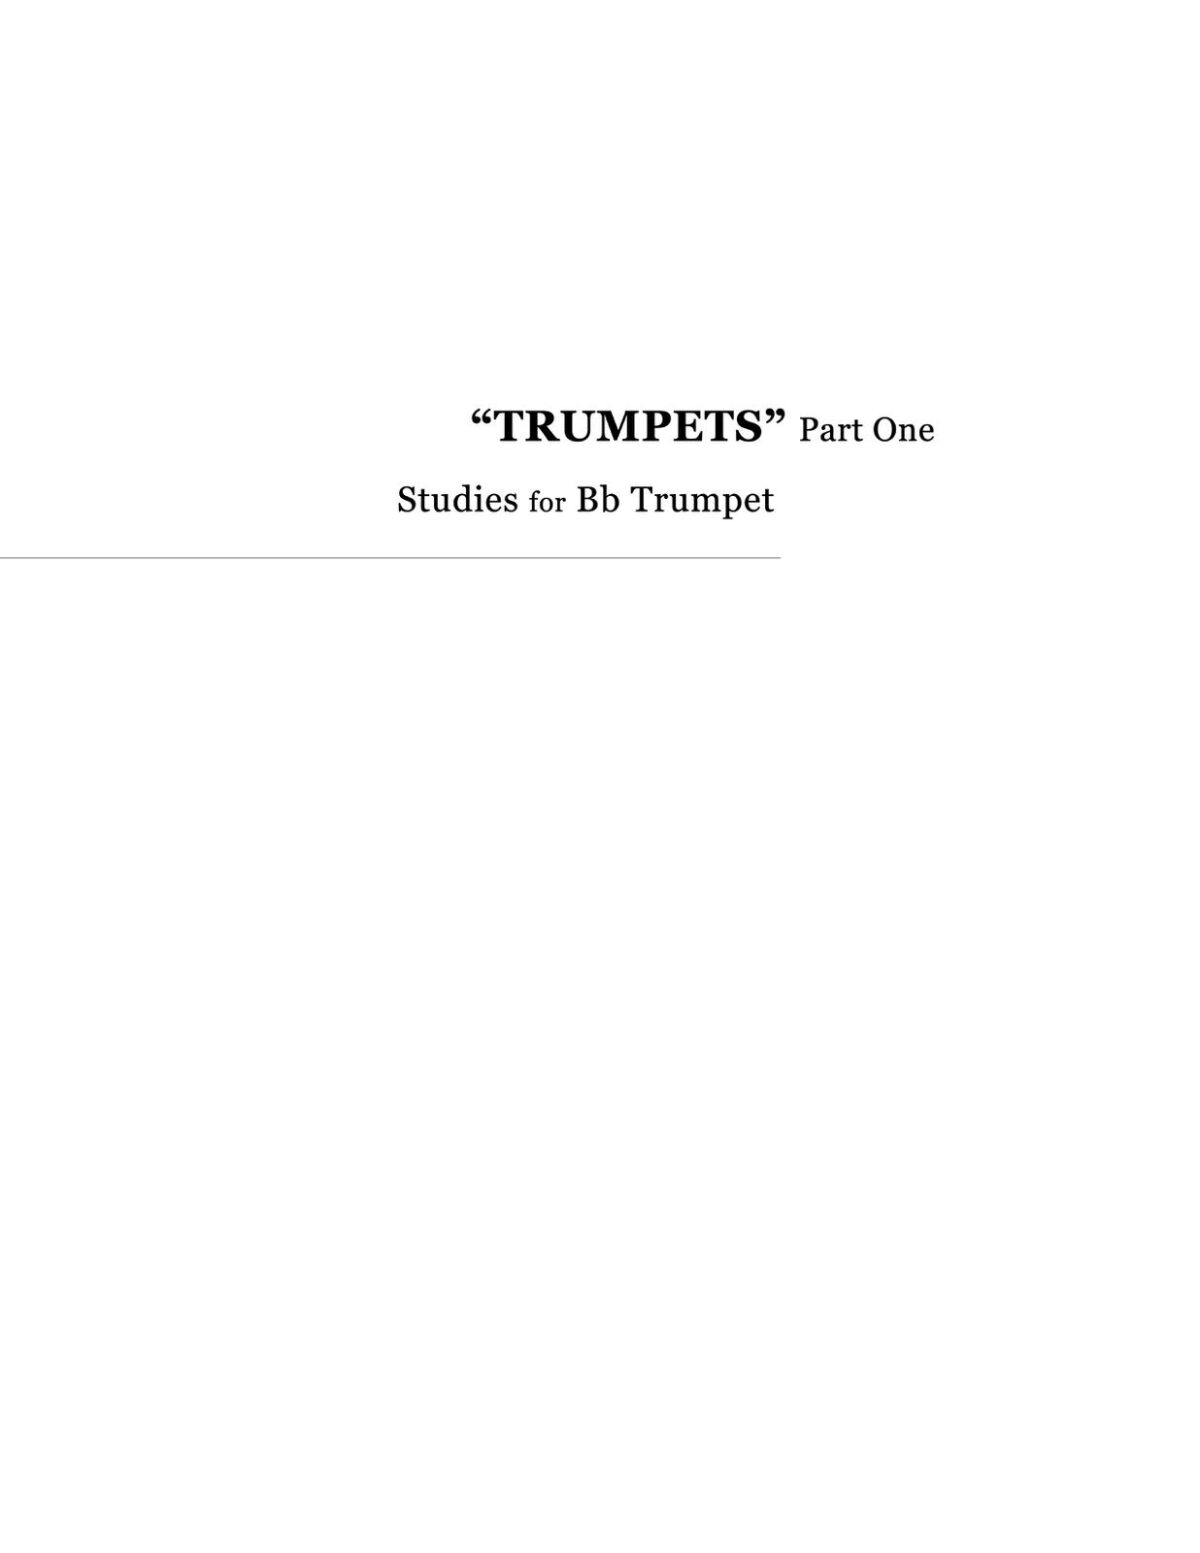 Broiles, Trumpets Studies for Bb and D Trumpet-p005